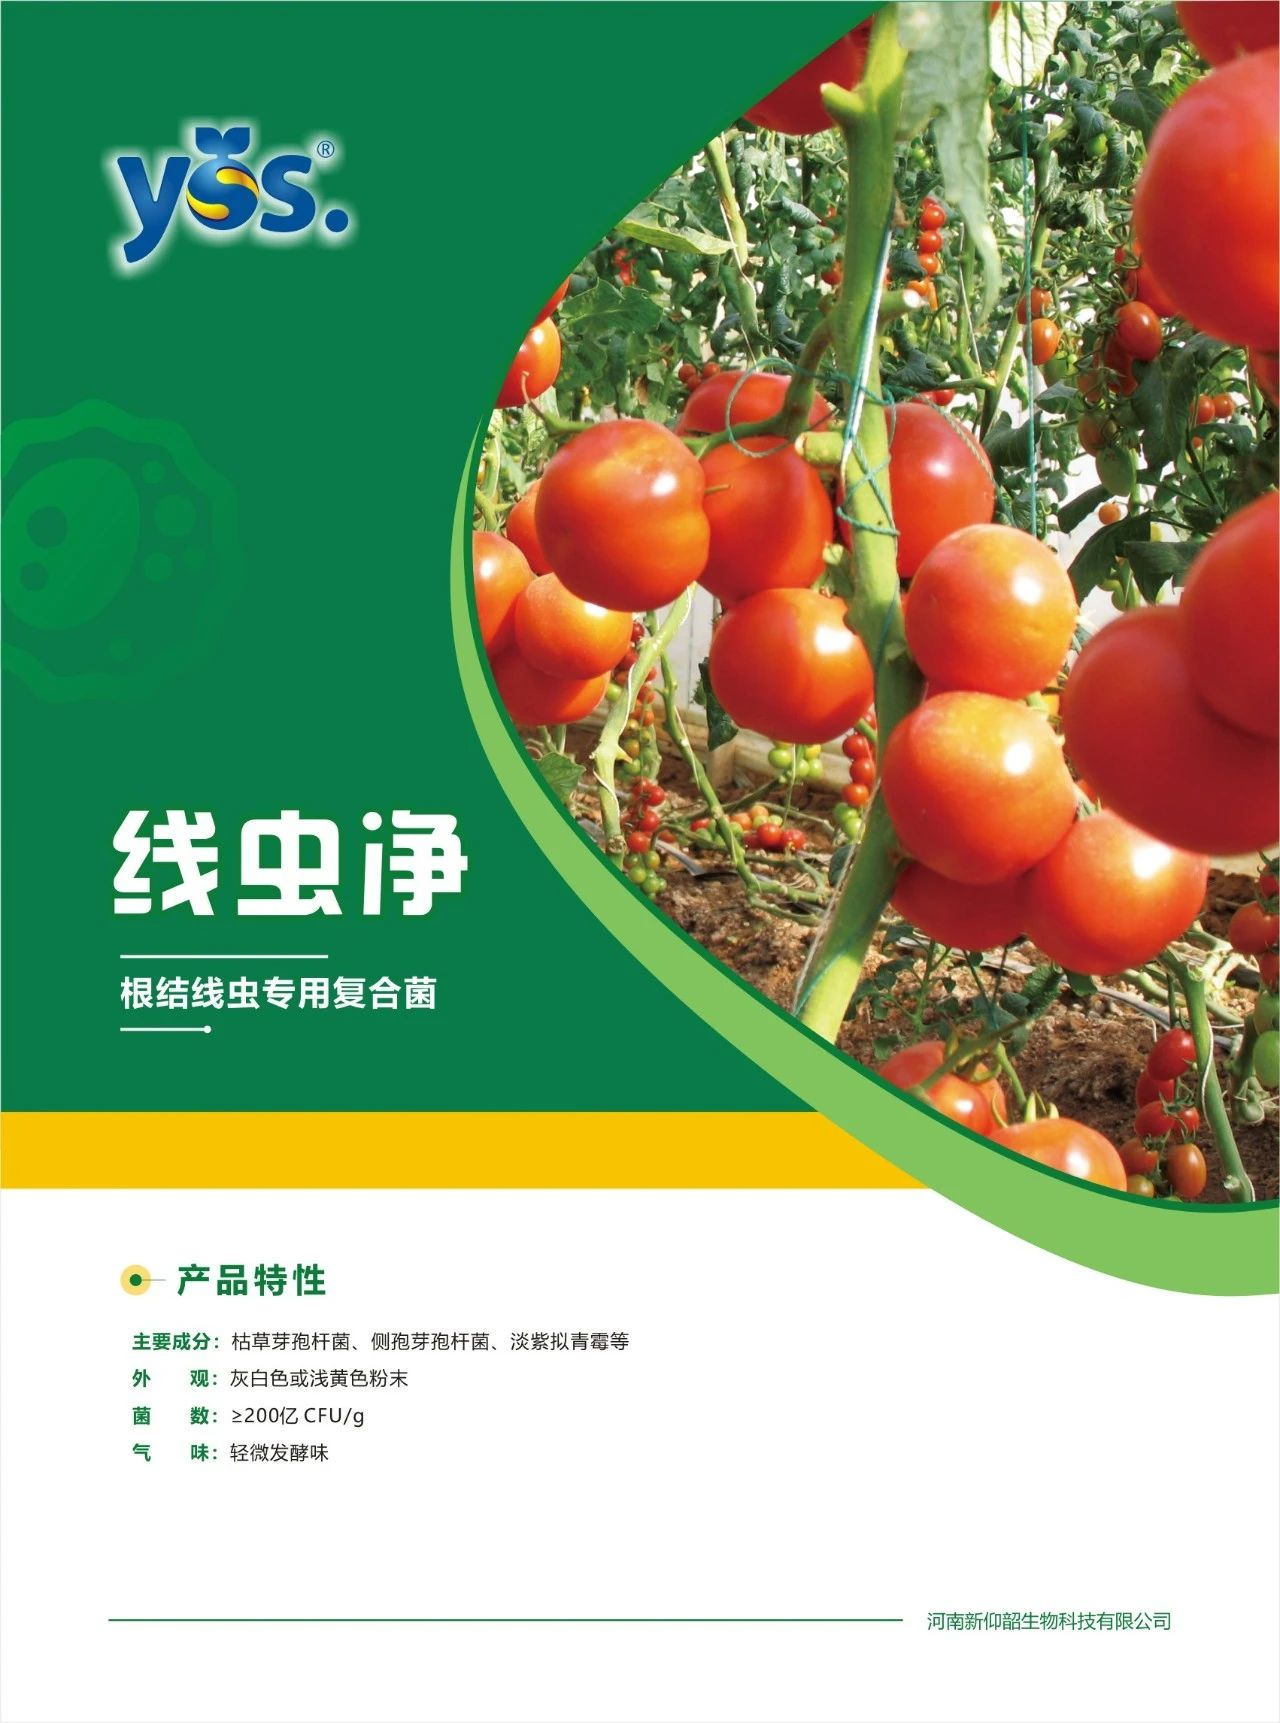 Henan Yangshao Bio-products Co., Ltd